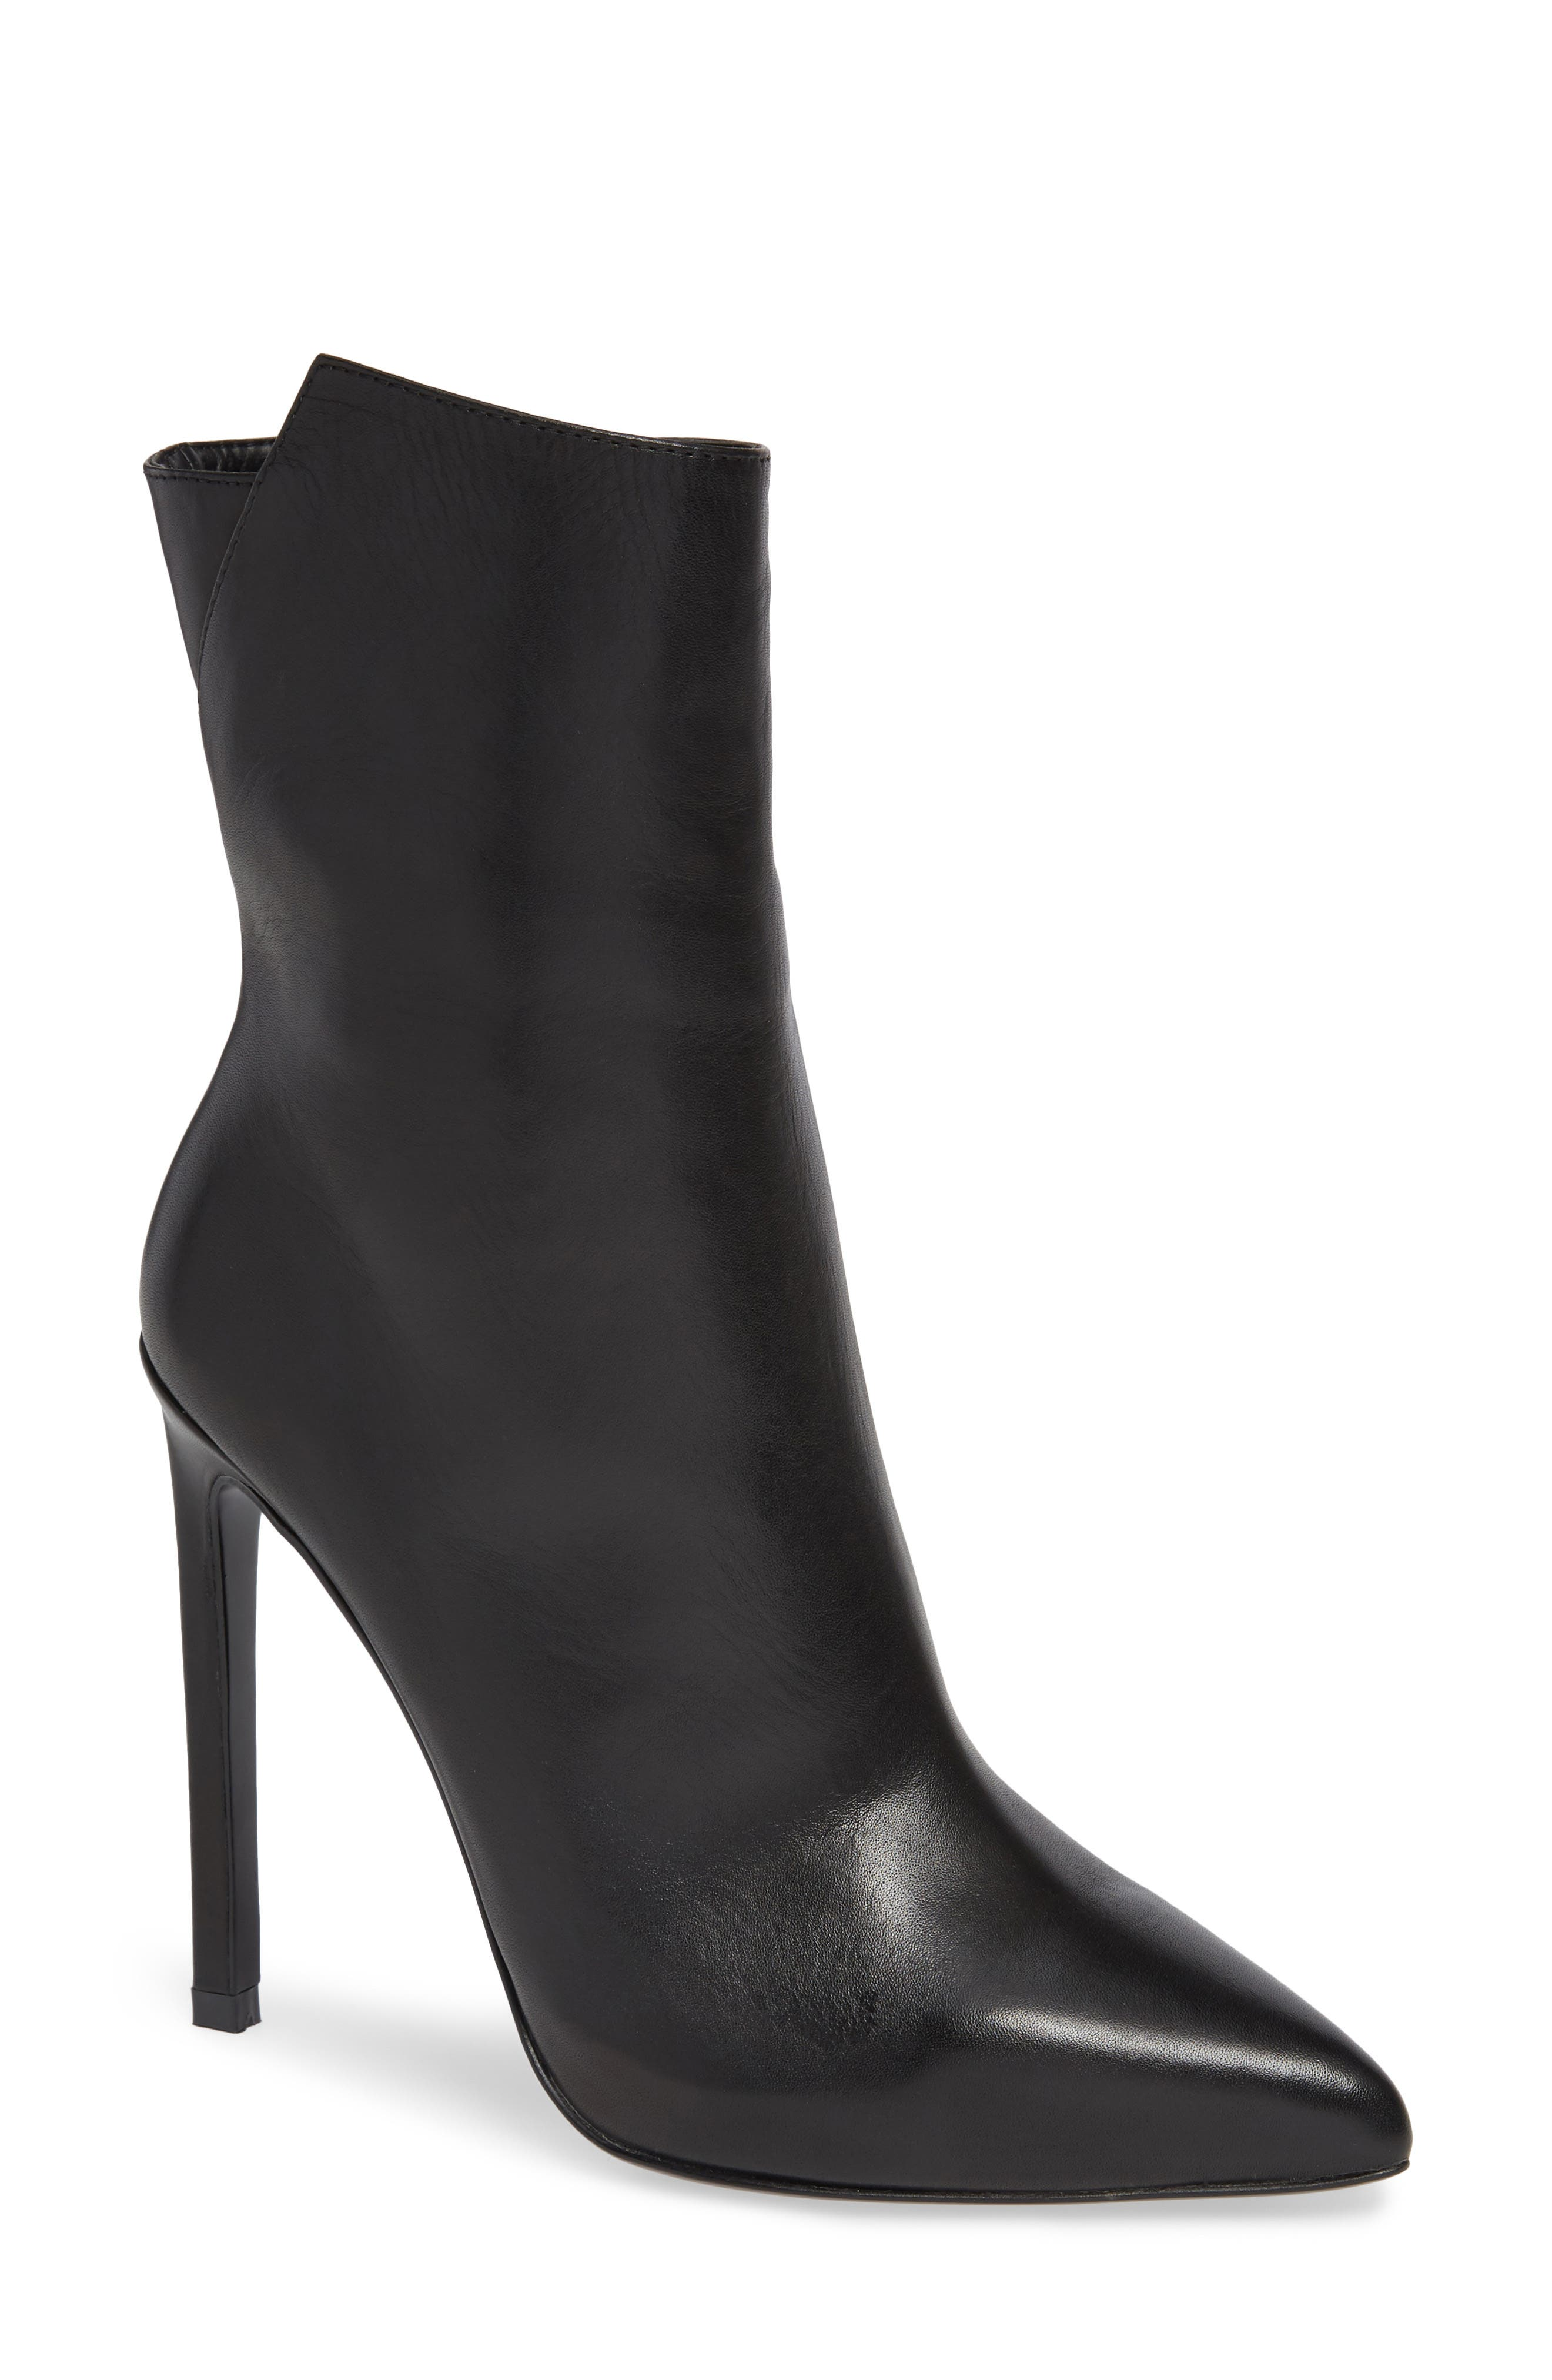 TONY BIANCO Frappe Bootie in Black Como Leather